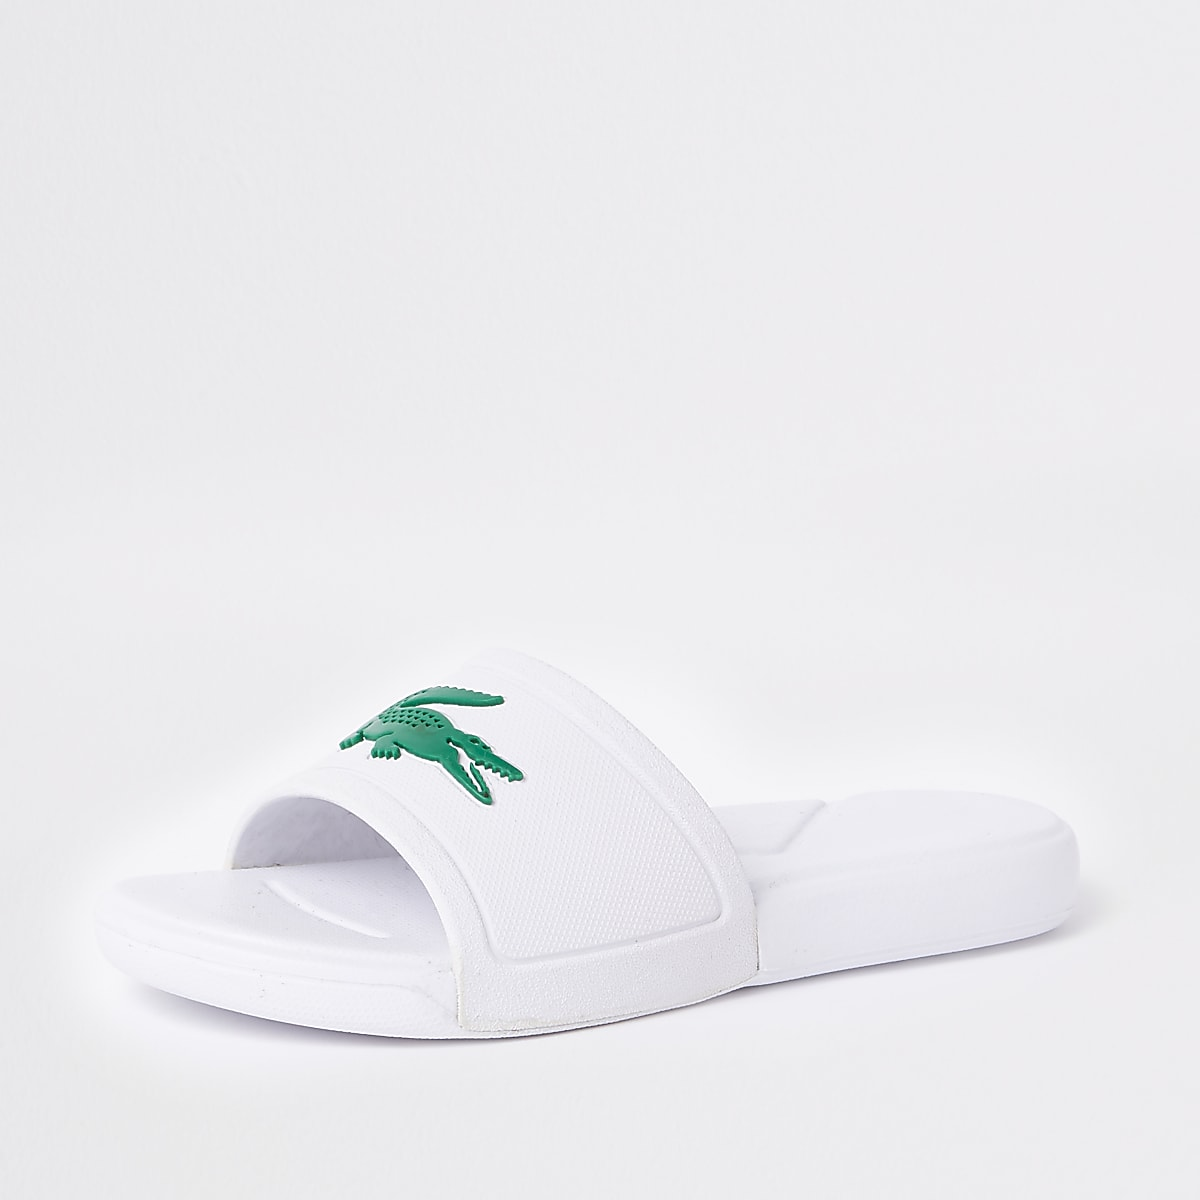 c5ddc6bc0afb Kids Lacoste white embossed sliders - Sandals - Footwear - boys